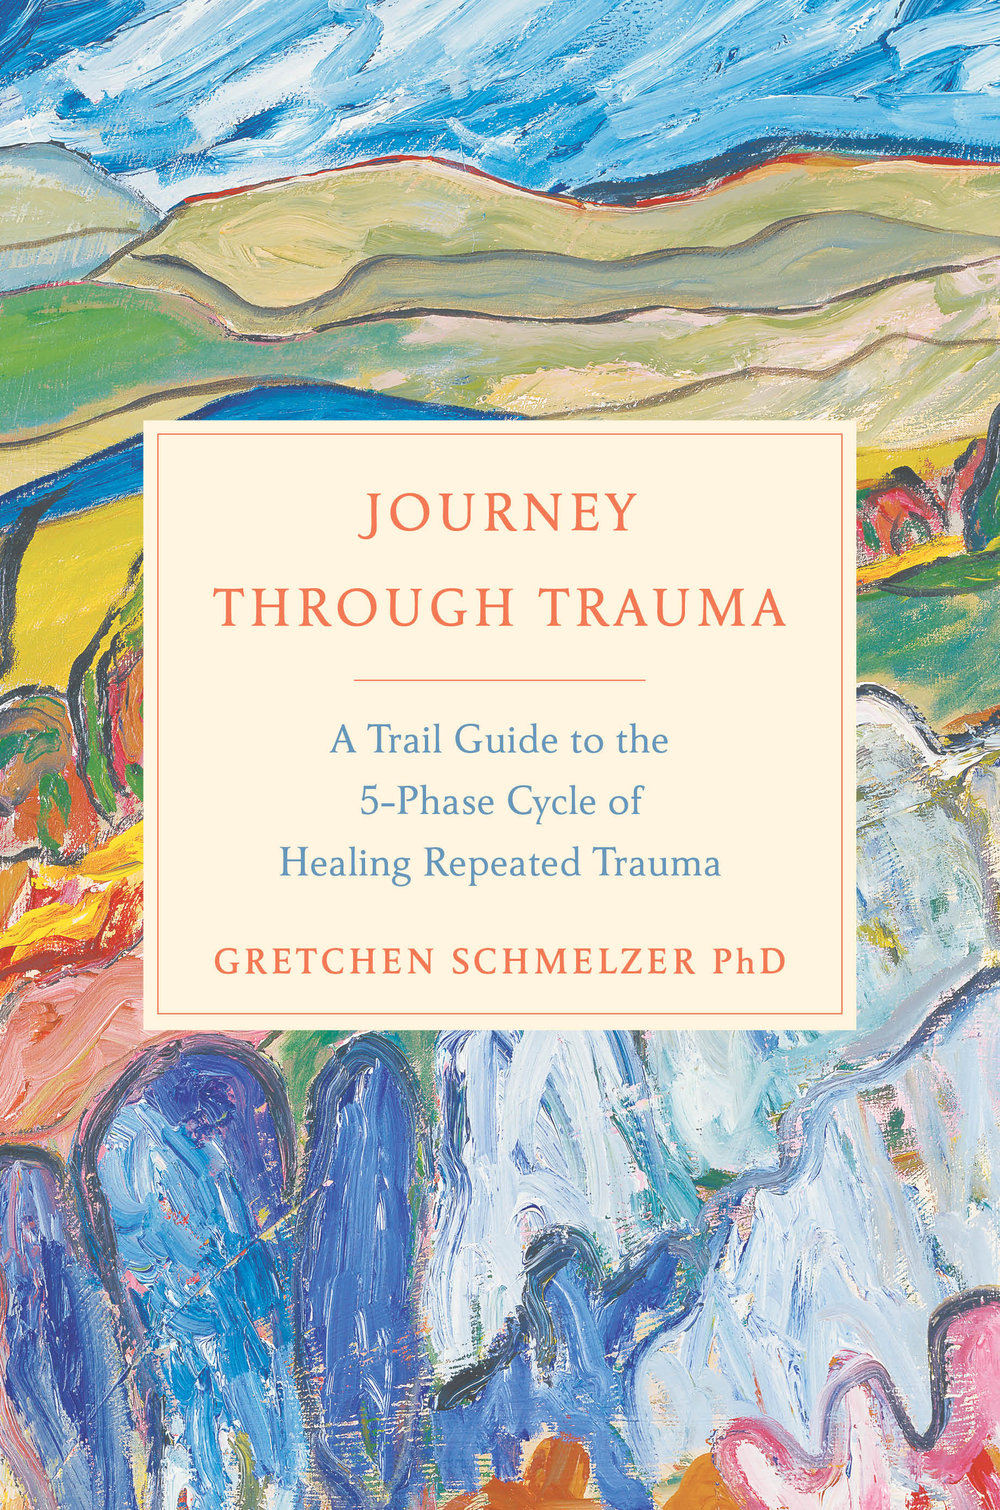 Journey Through Trauma available for  Pre-order Now .